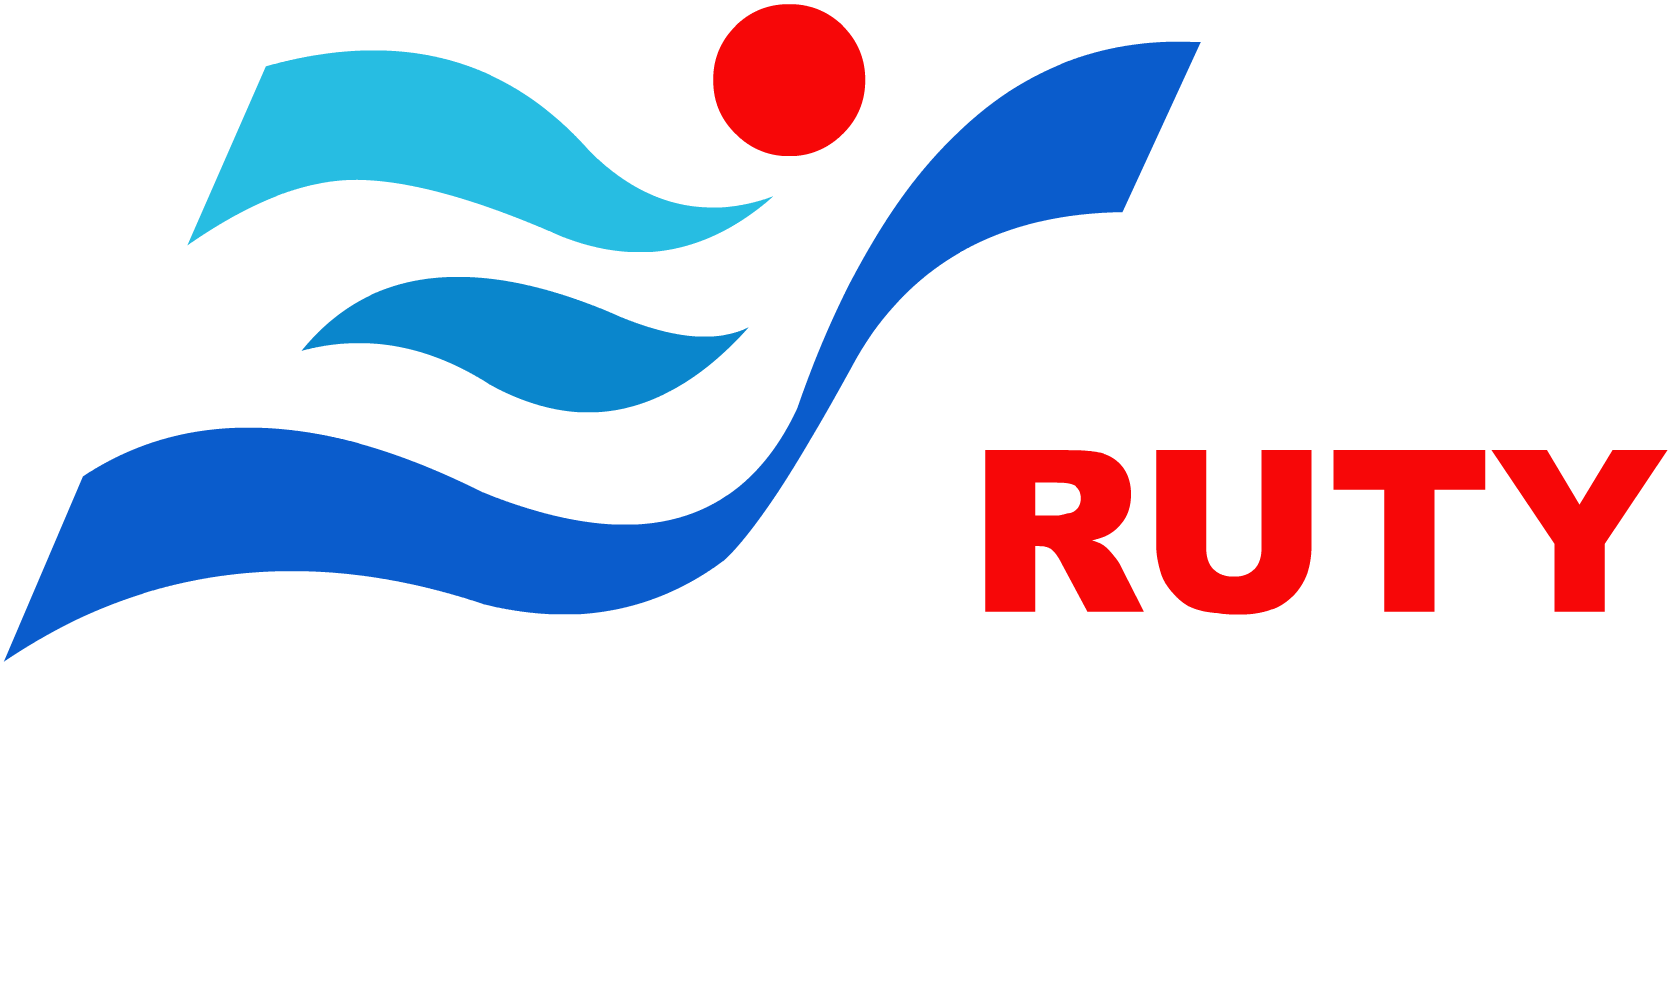 SHANGHAI RUTY ENERGY CO., LTD